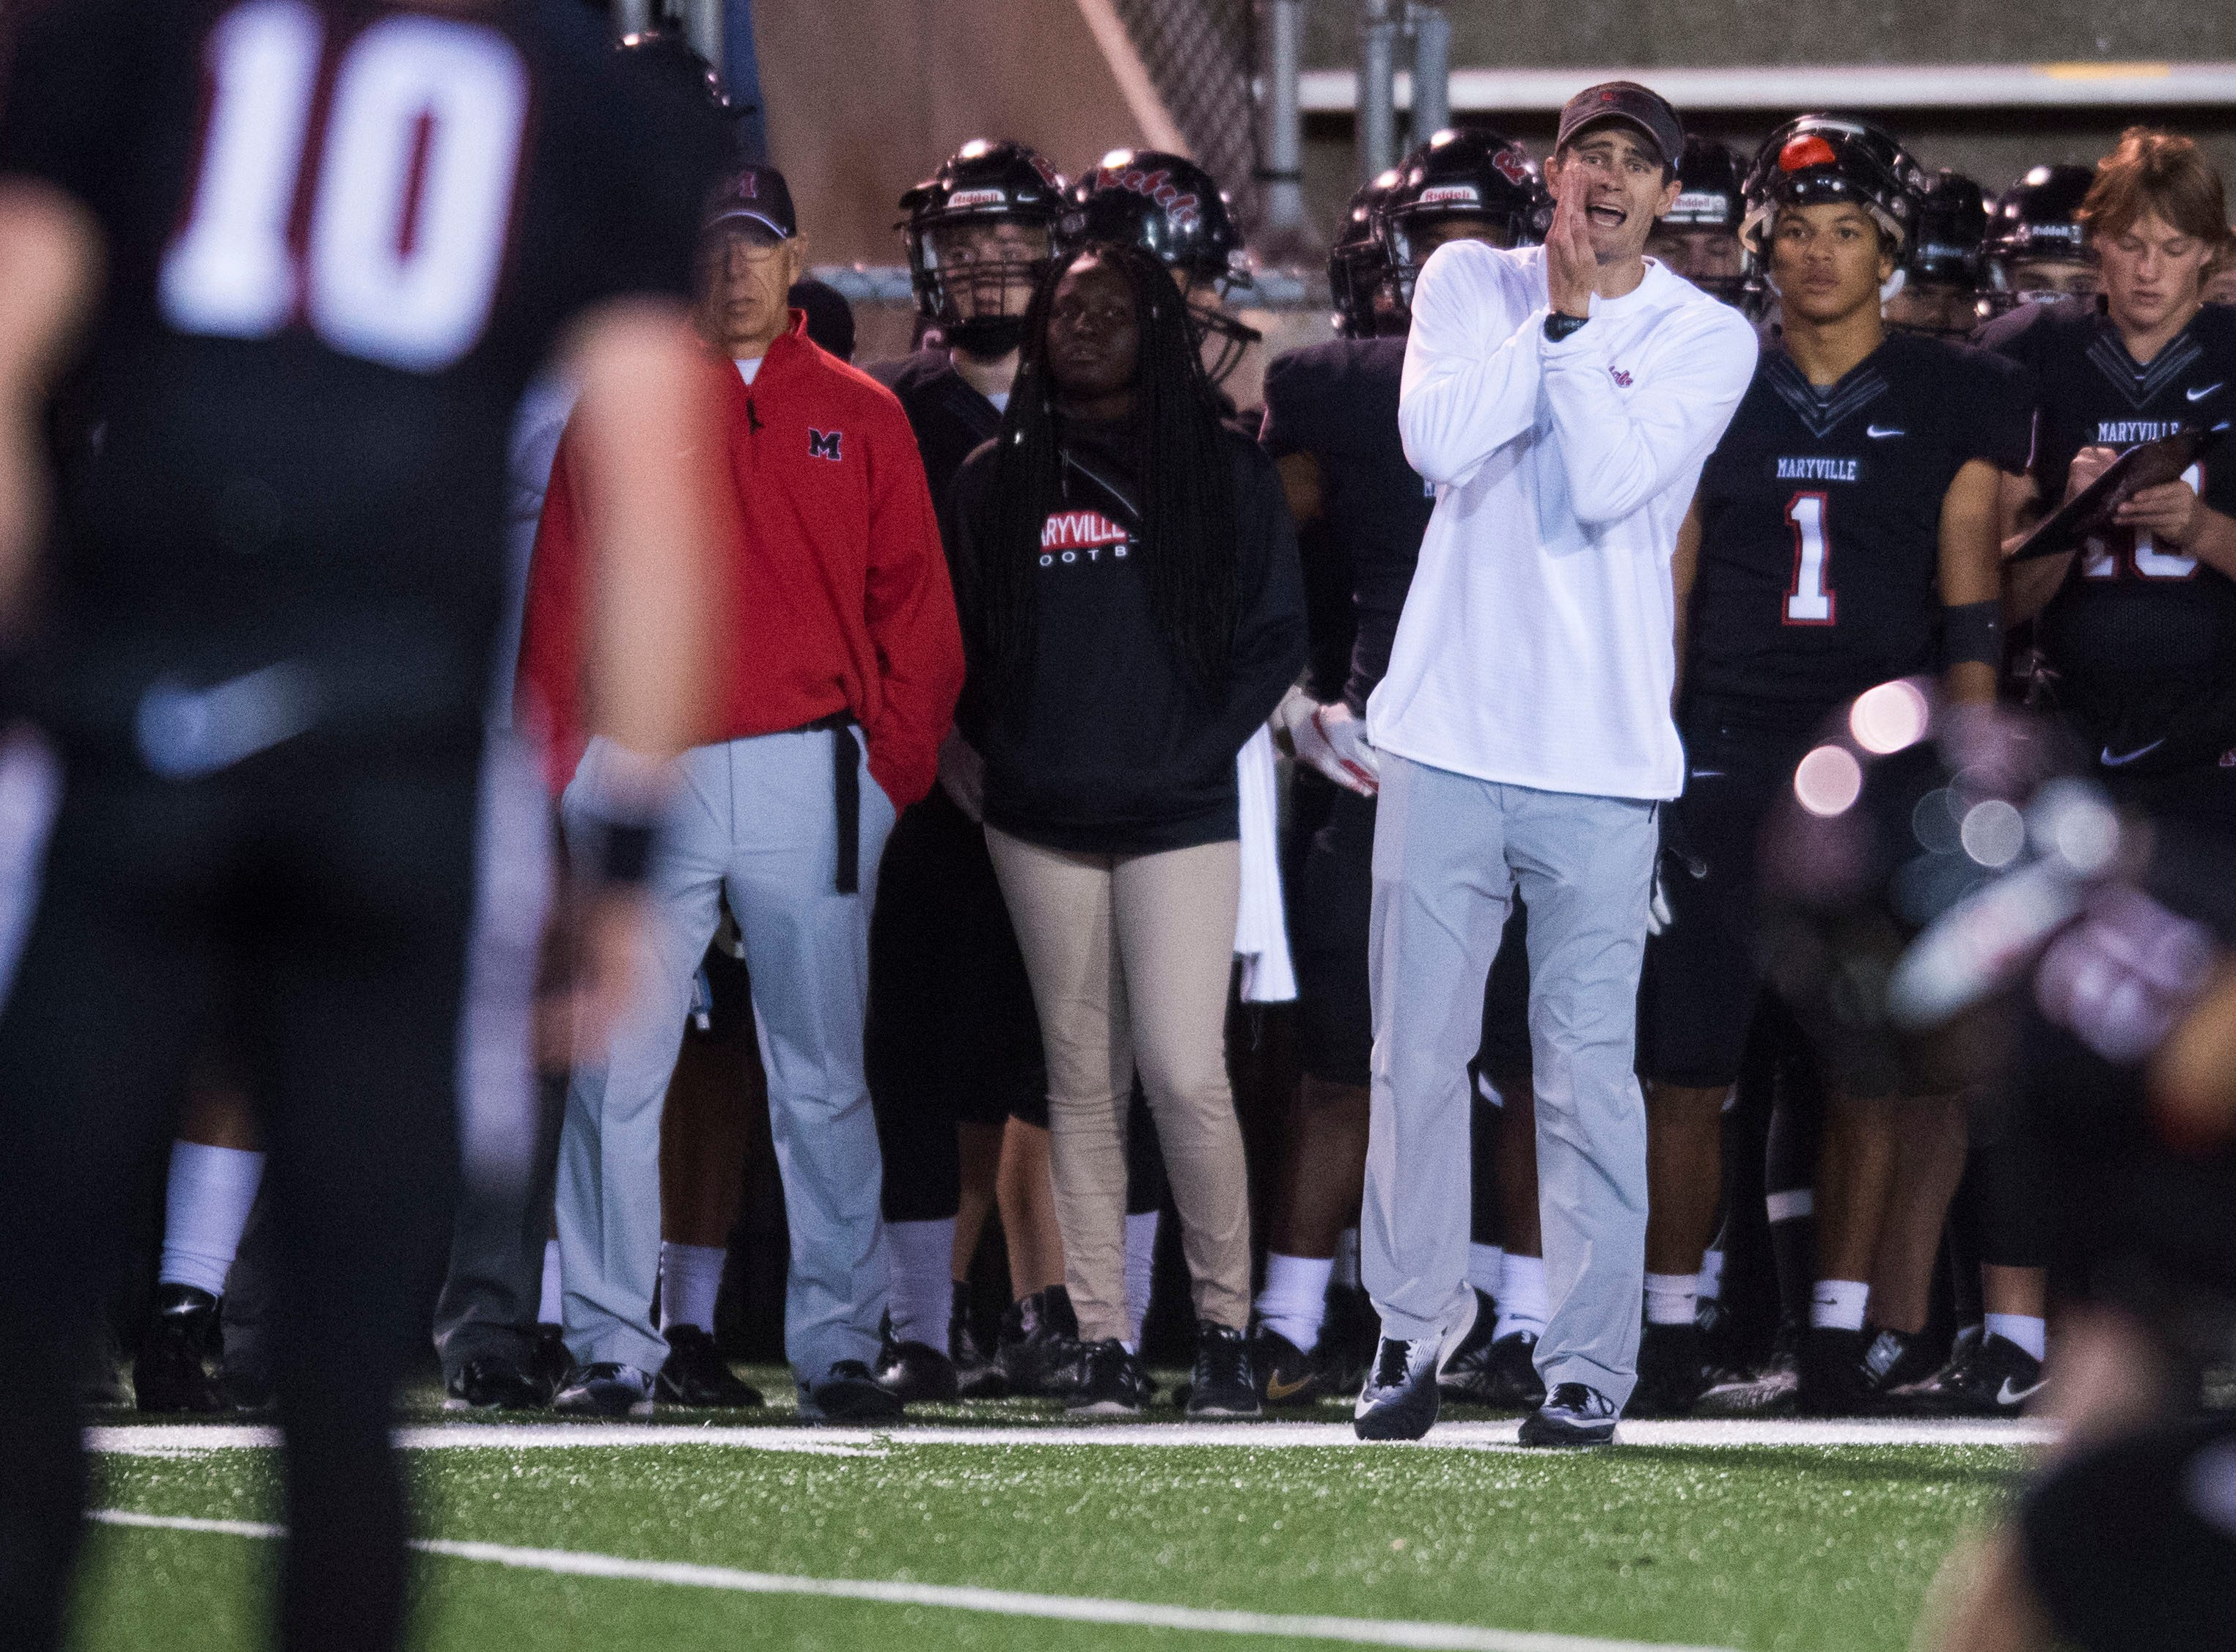 Maryville Head Coach Derek Hunt yells a play during a first round playoff game between Maryville and Bearden at Maryville, Friday, Nov. 2, 2018. Maryville defeated Bearden 28-7.